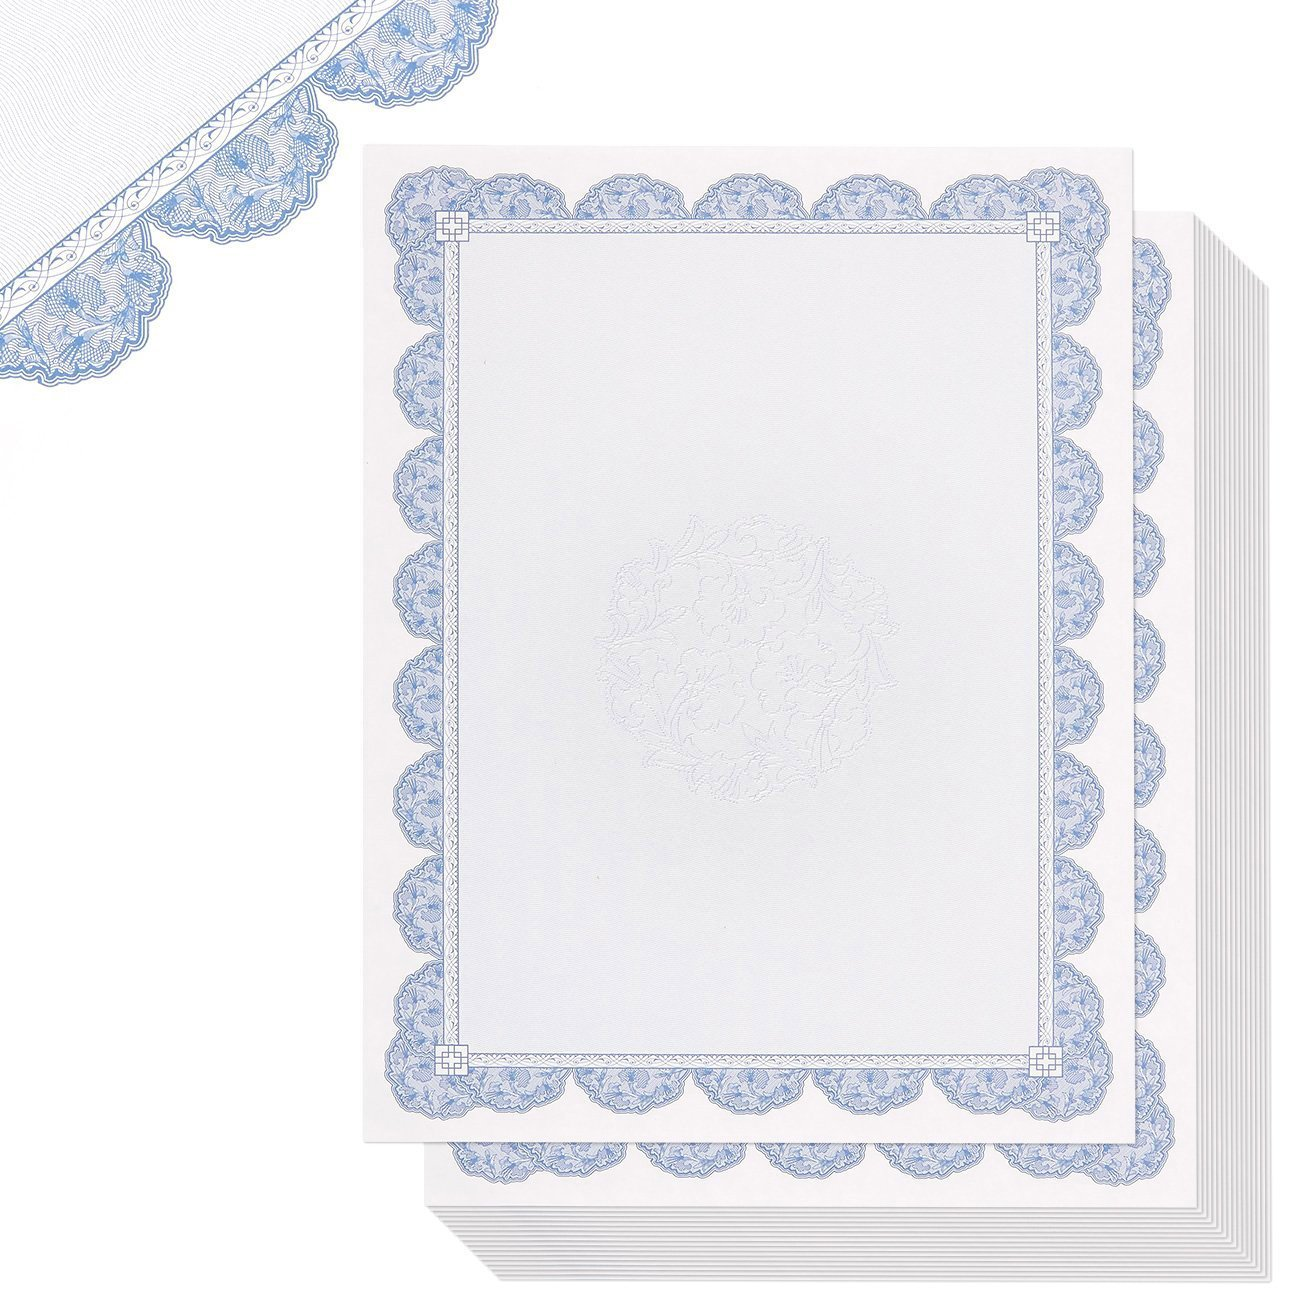 cheap blank certificate templates find blank certificate templates